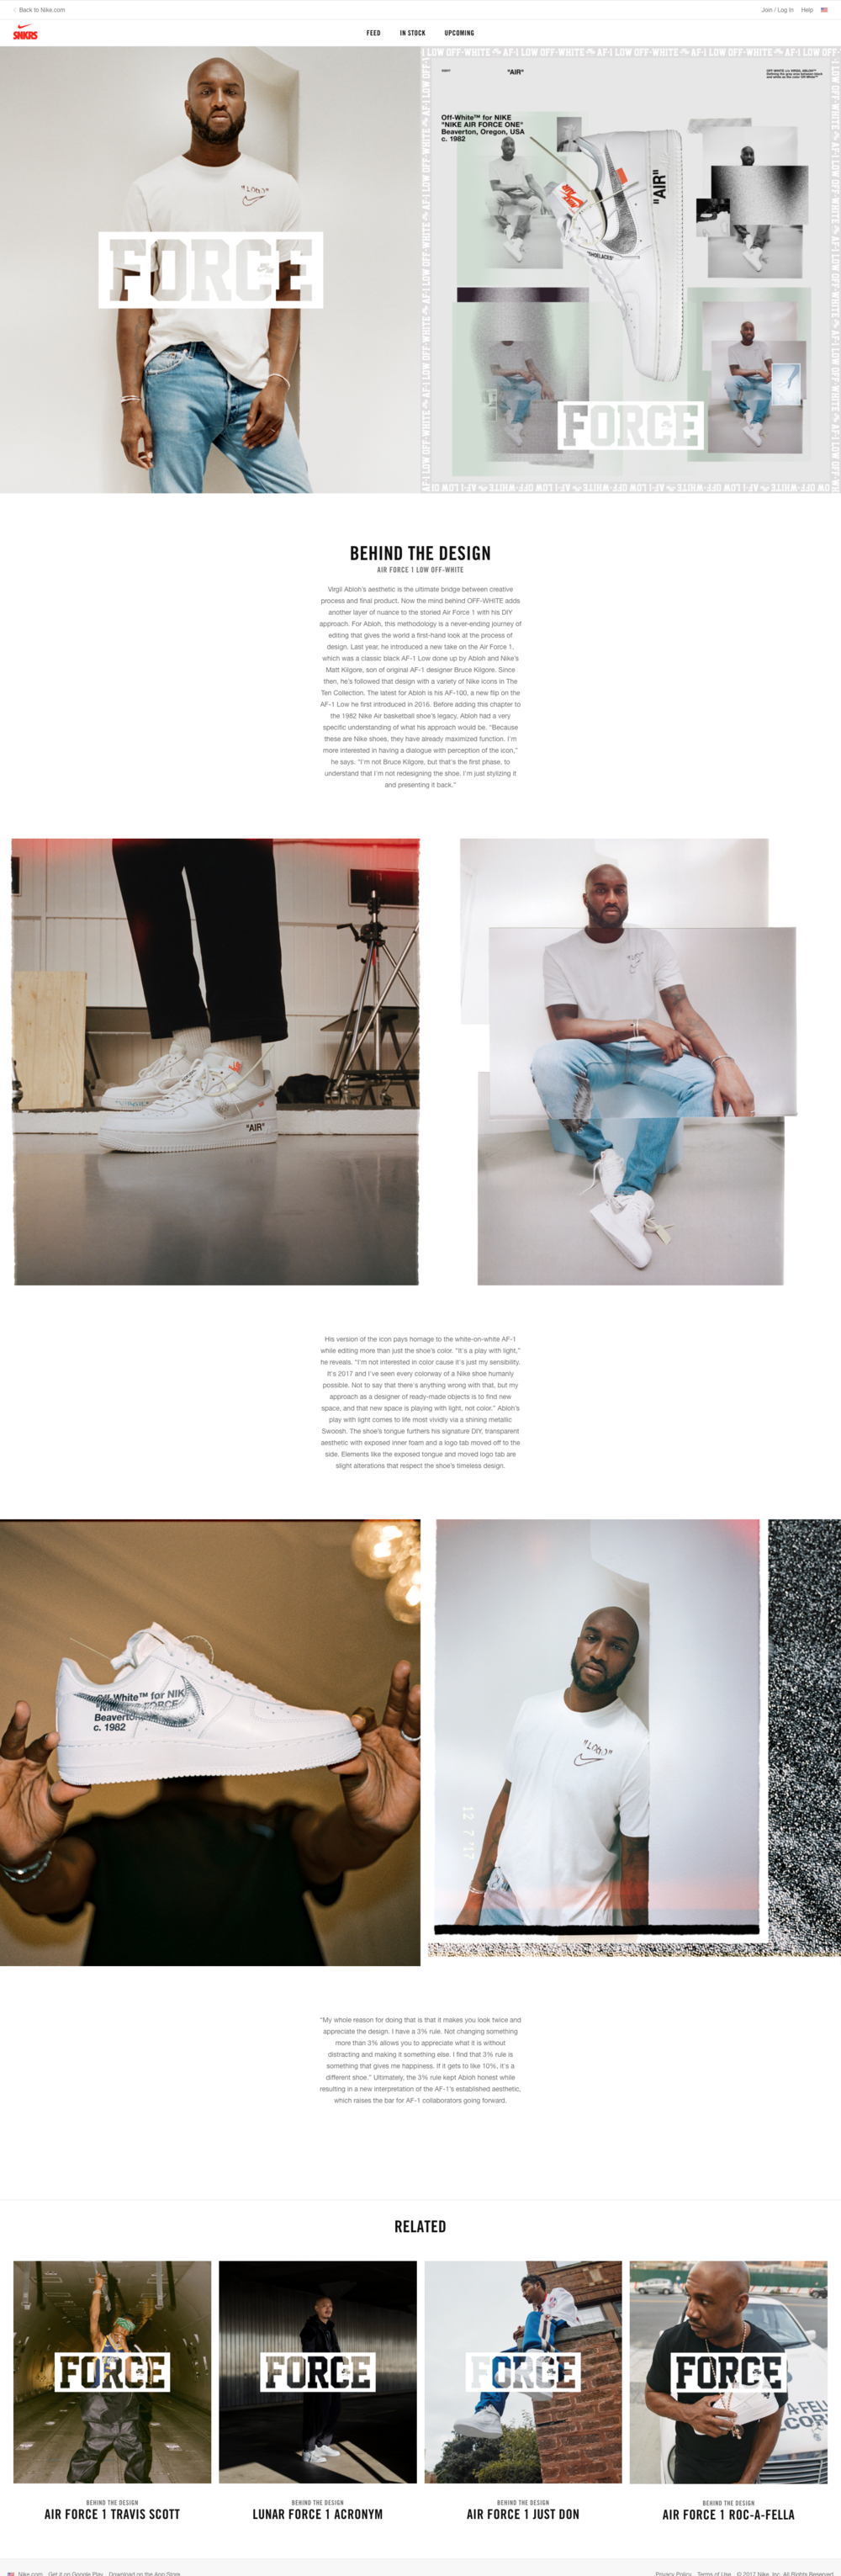 screencapture-nike-launch-t-behind-the-design-air-force-1-low-off-white-1510177074096.png